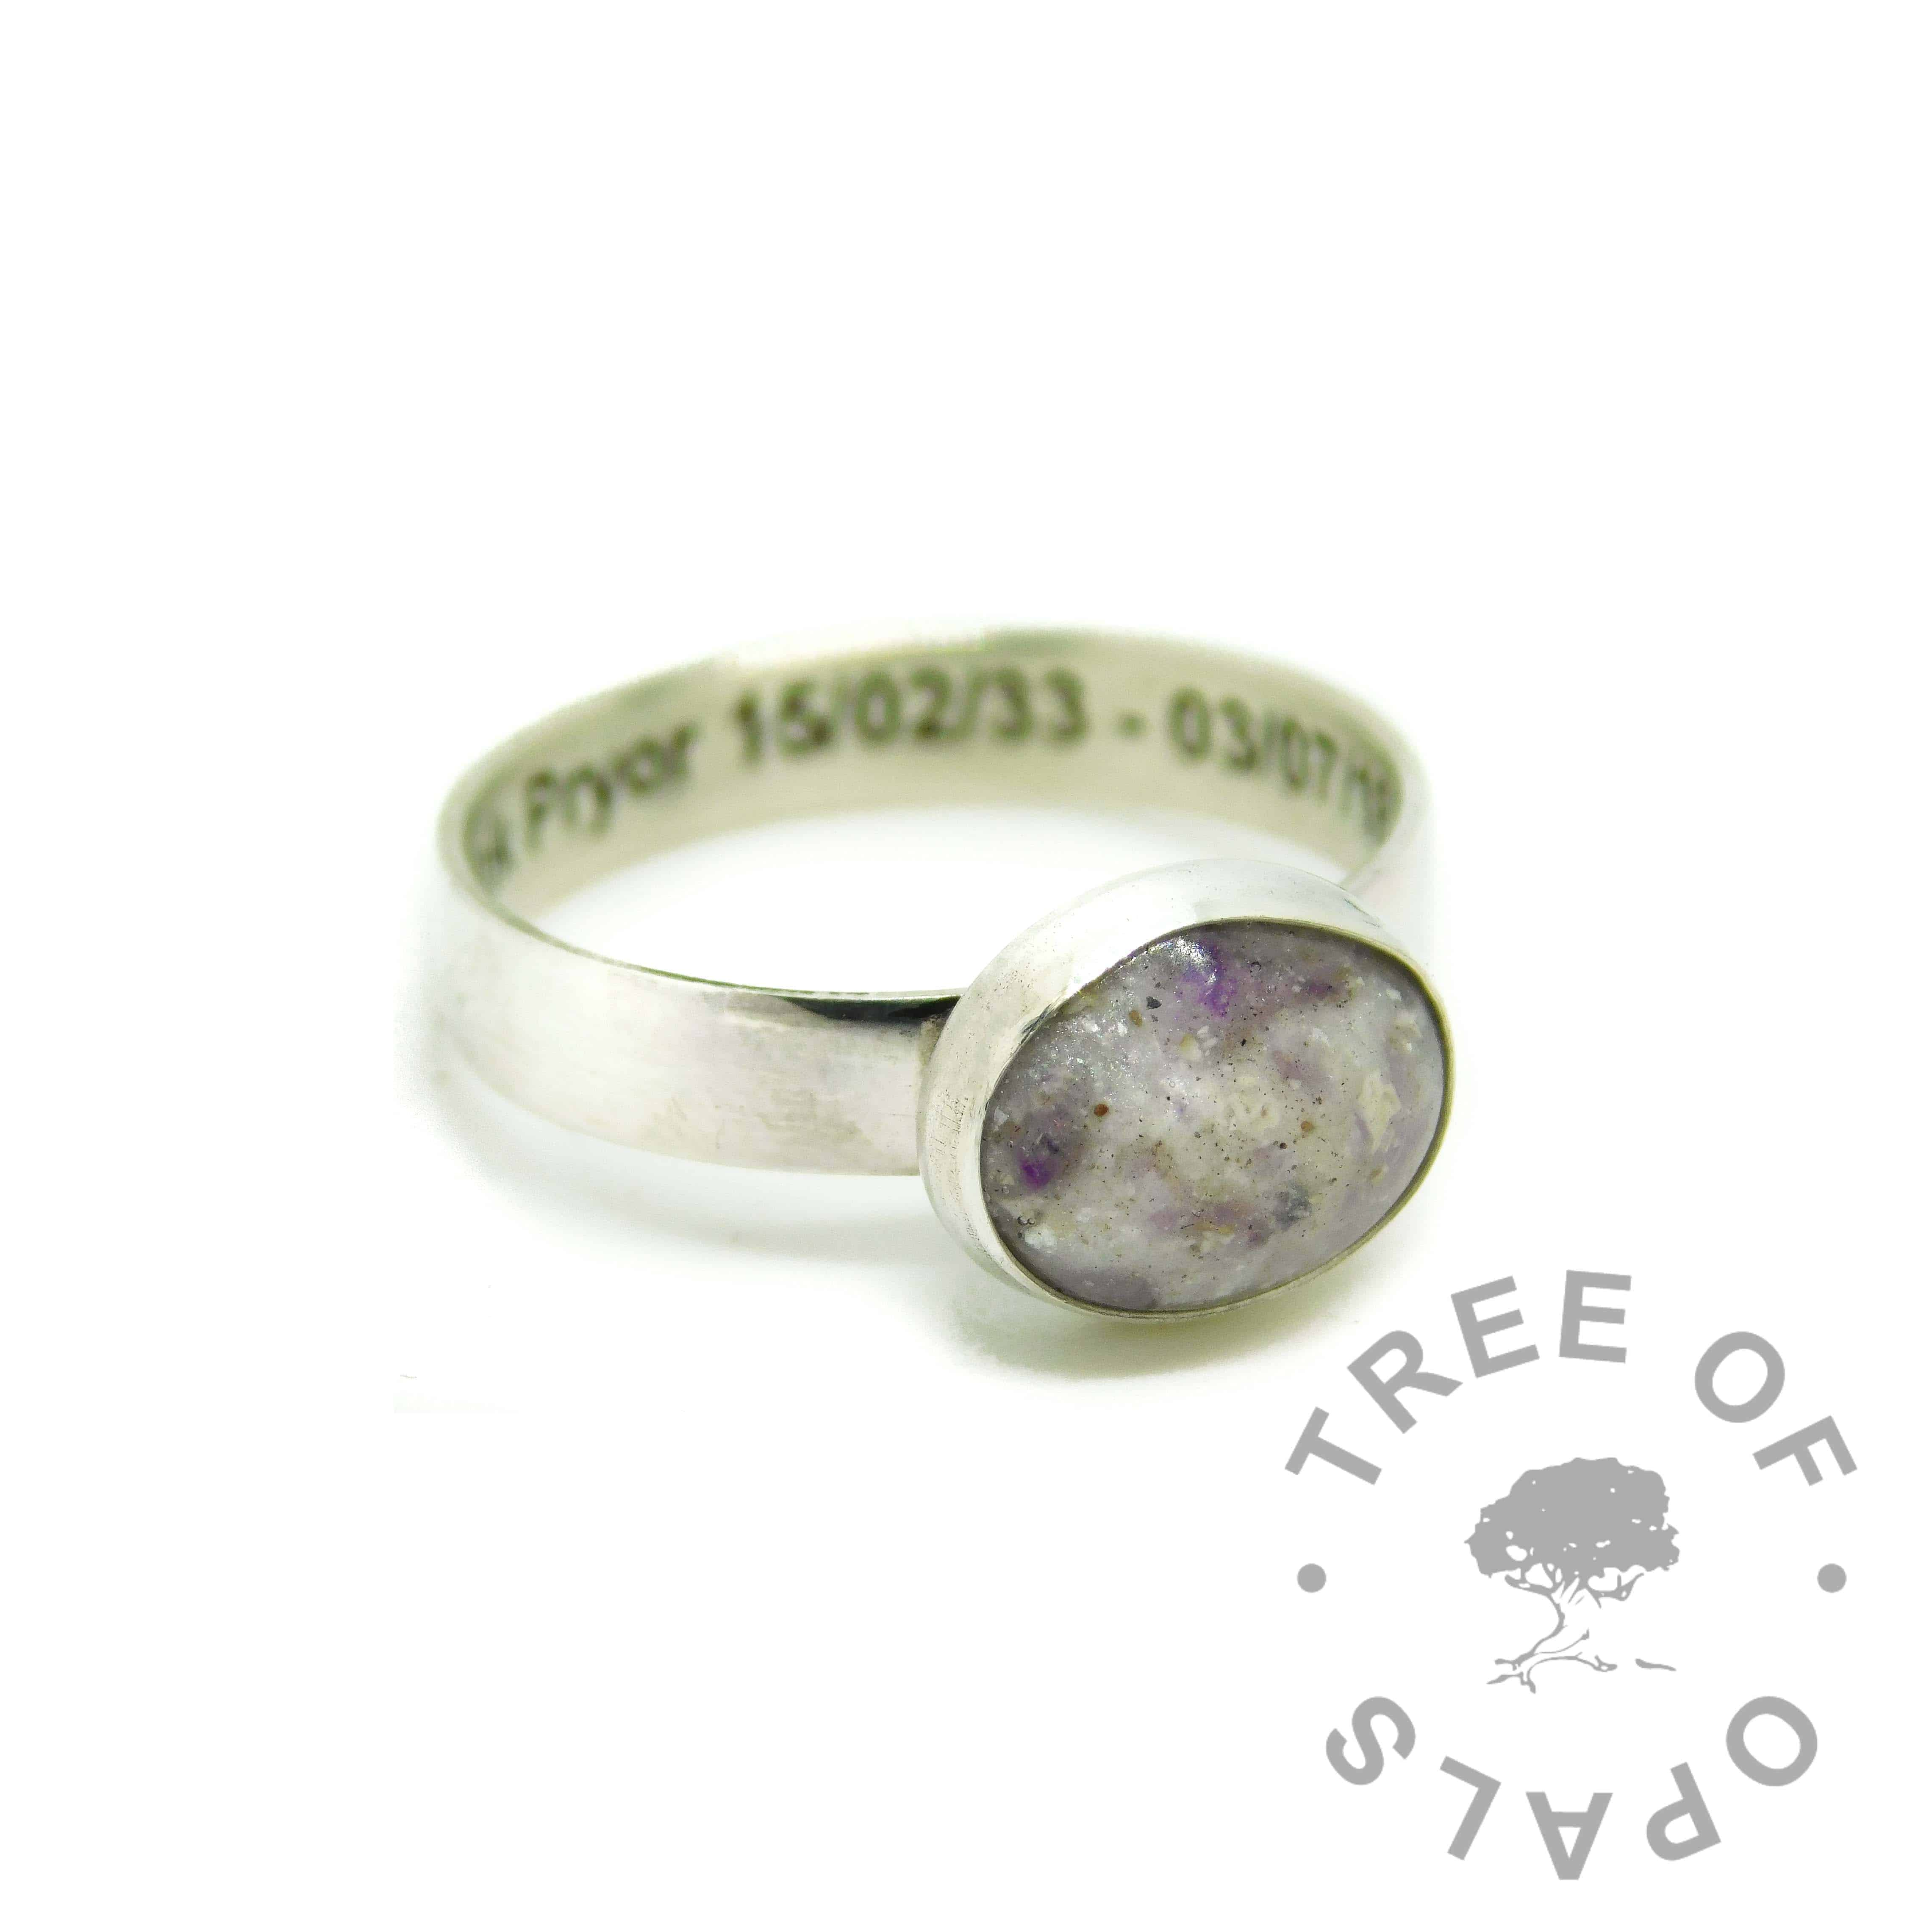 cremation ashes ring engraved on the inside in arial font. Ash and unicorn white resin sparkle mix, amethyst February birthstone